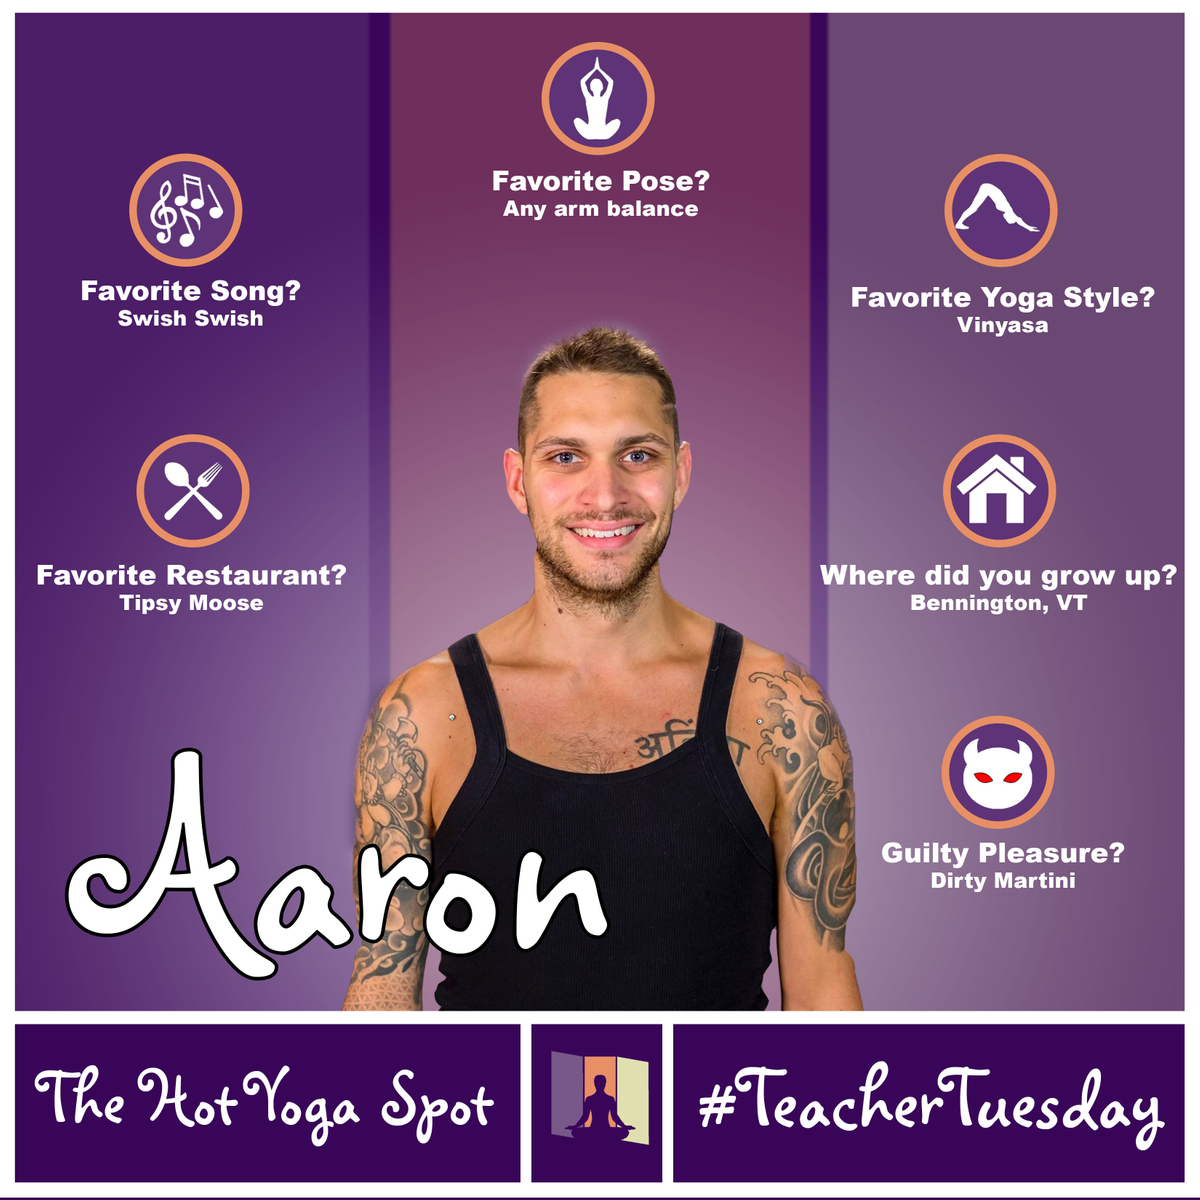 Aaron Teacher Tuesday.jpg